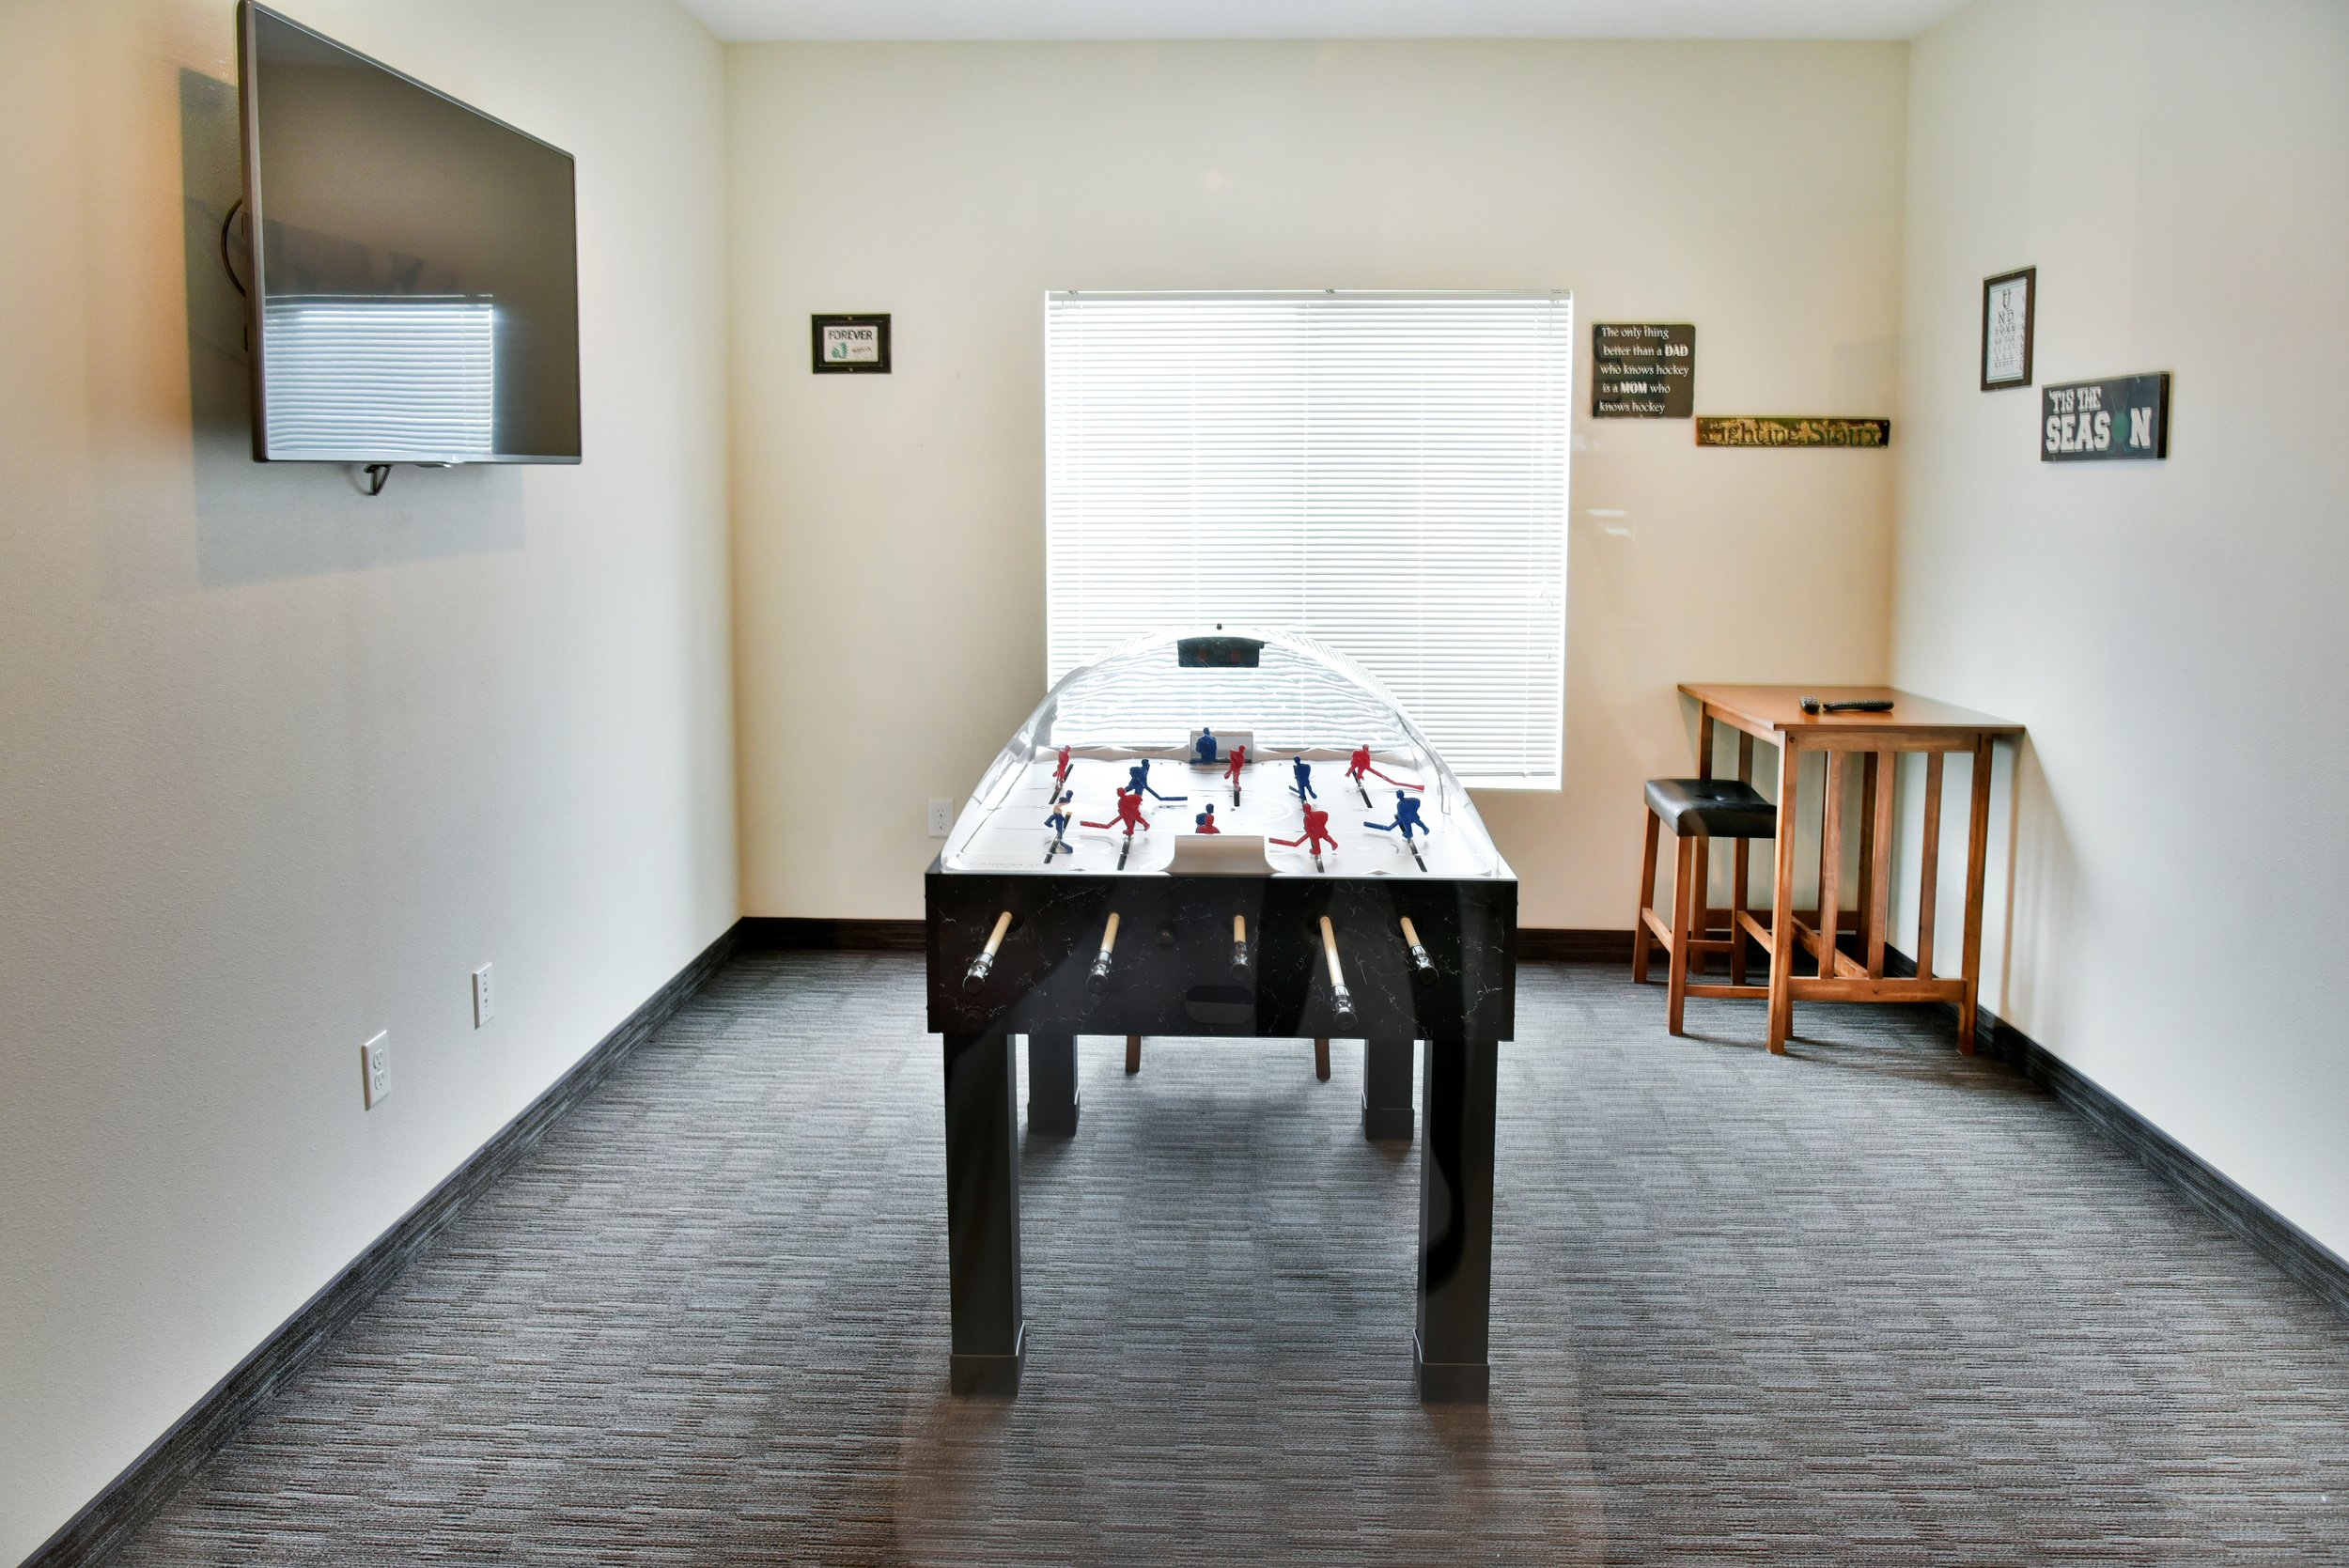 Hang Out & Enjoy the Game Room